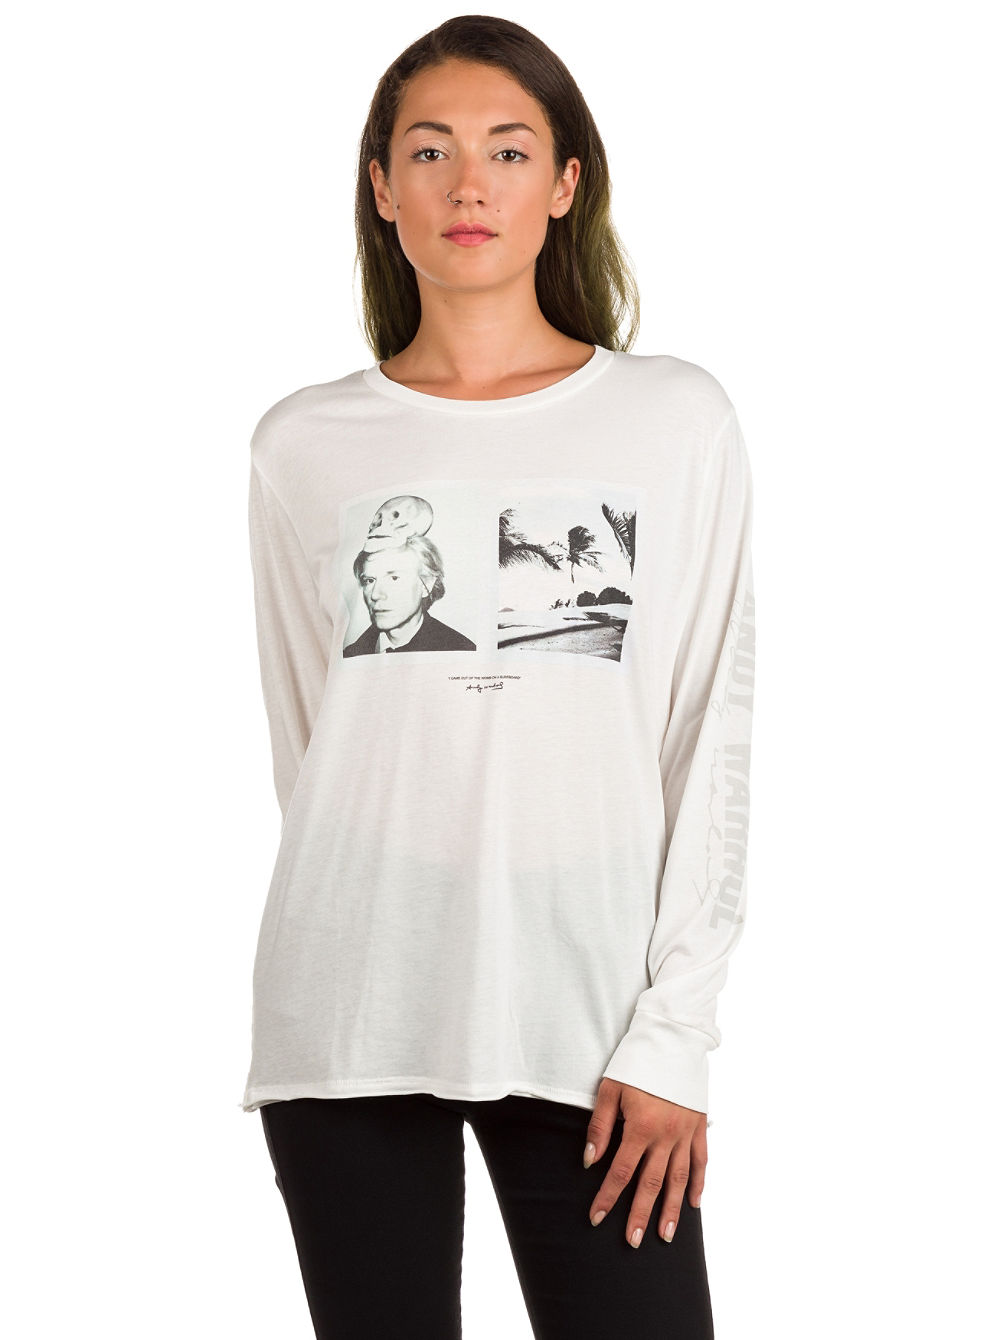 X Warholsurf Hidden Palms T-Shirt